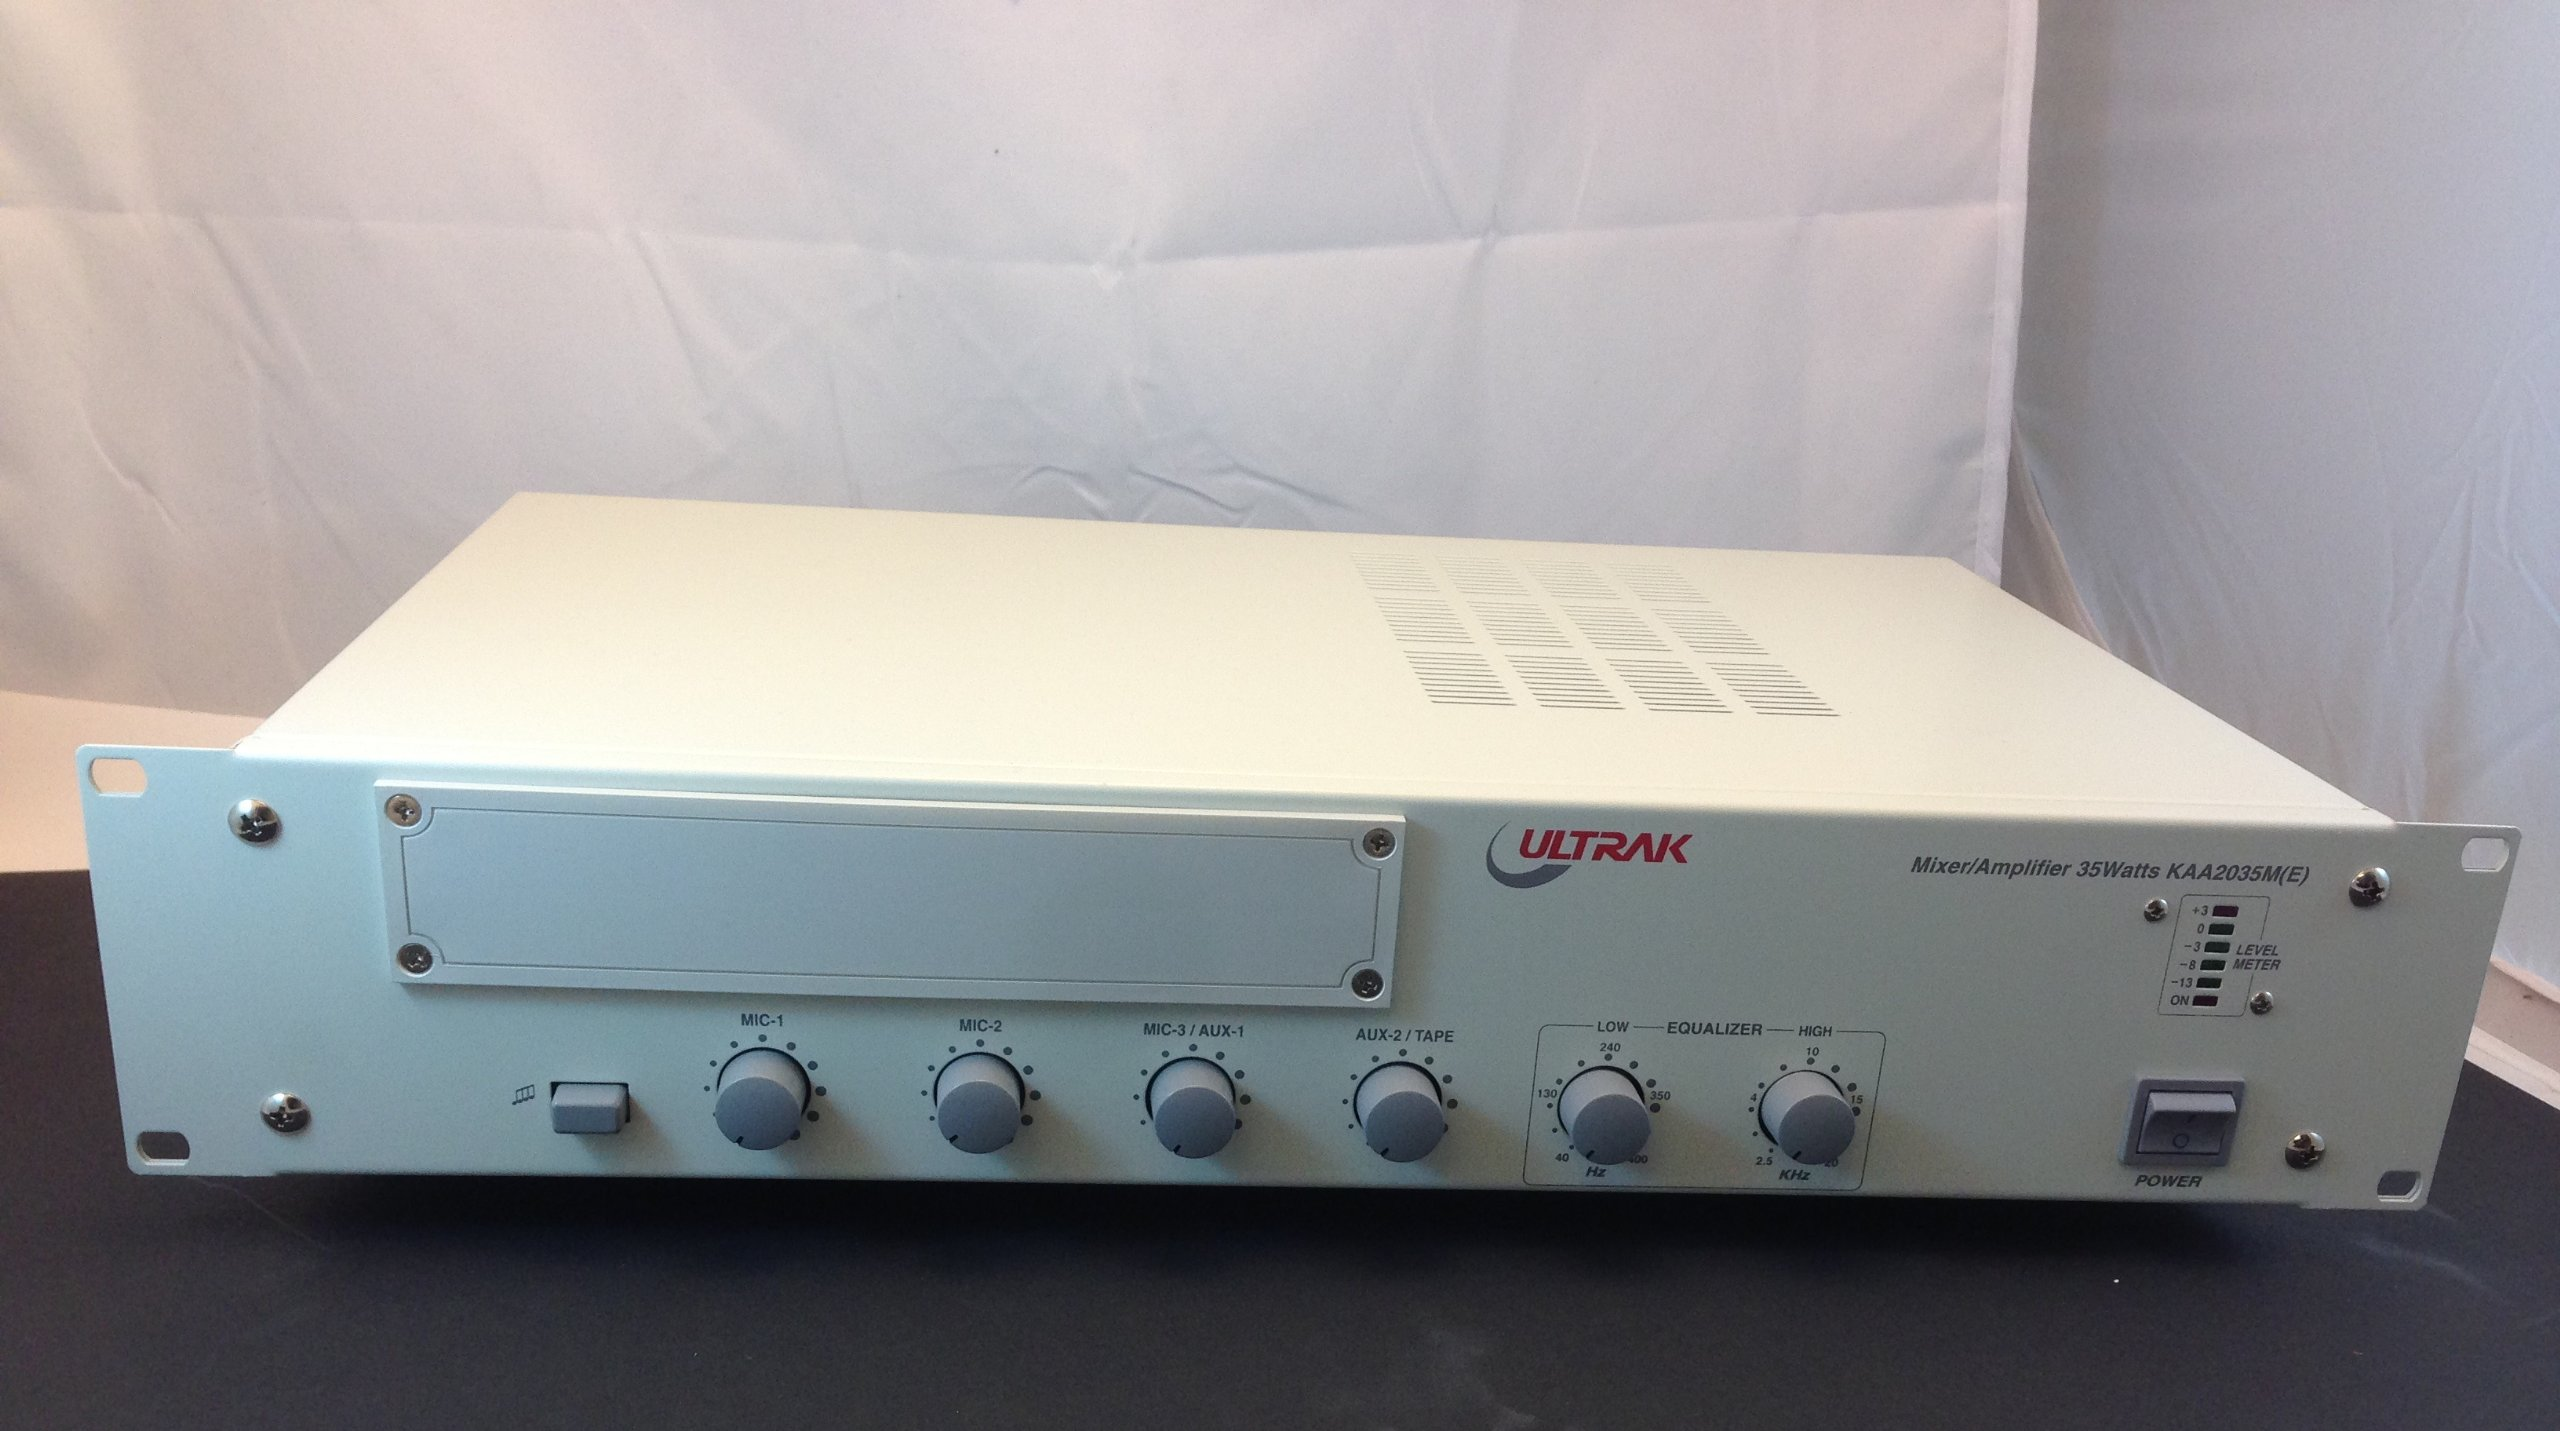 ULTRAK PA AMP / MIXER, 70-100V RATED @ 95 WATTS by CES